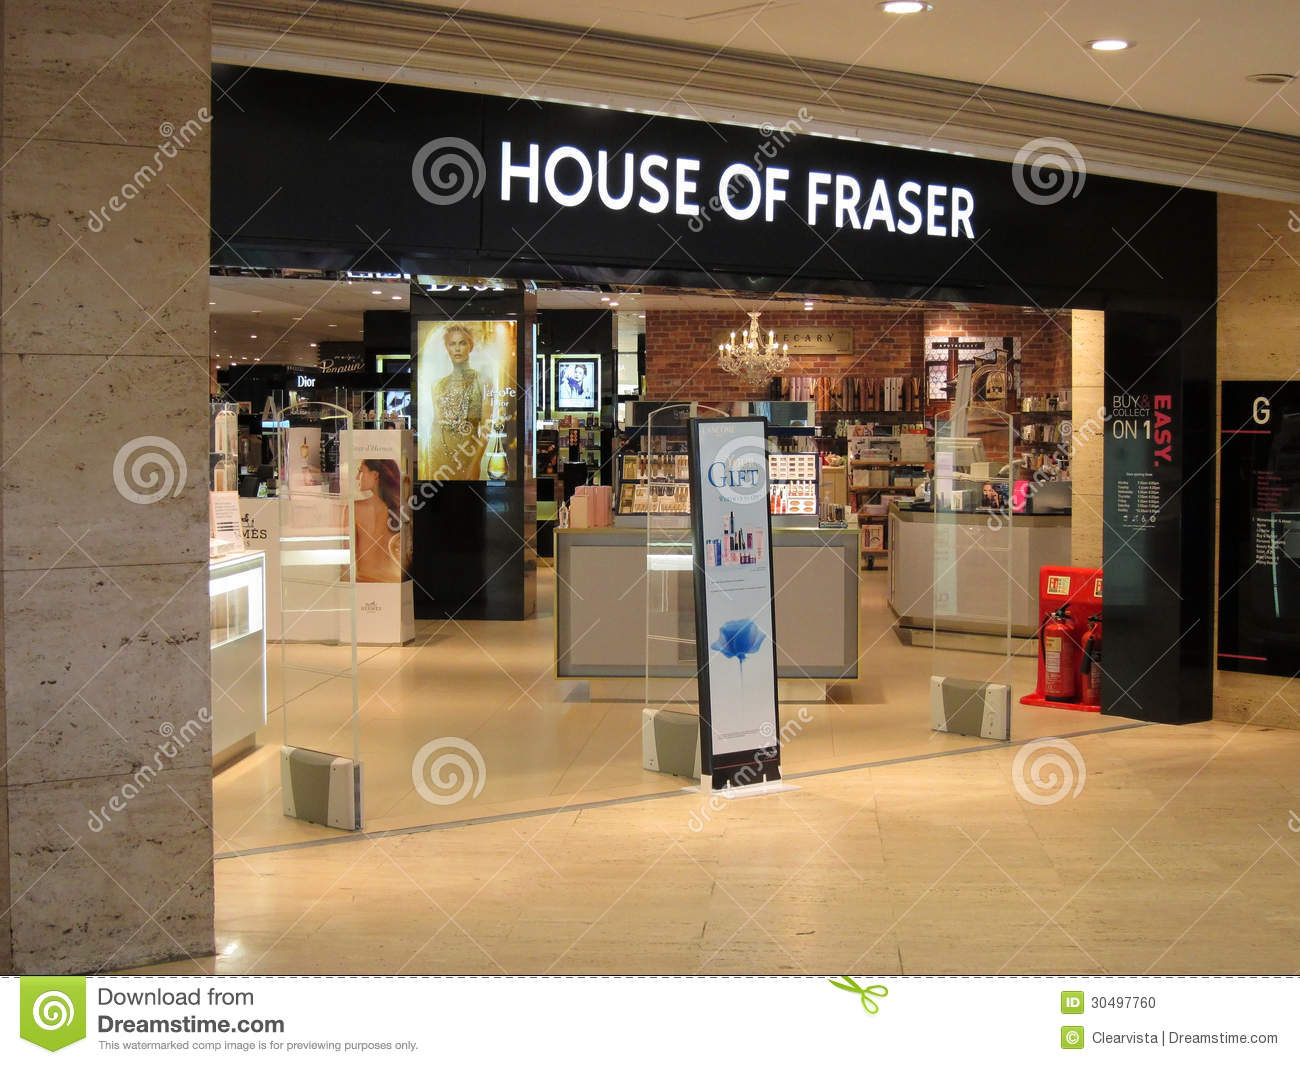 House of fraser store entrance editorial image image for Housse of fraser